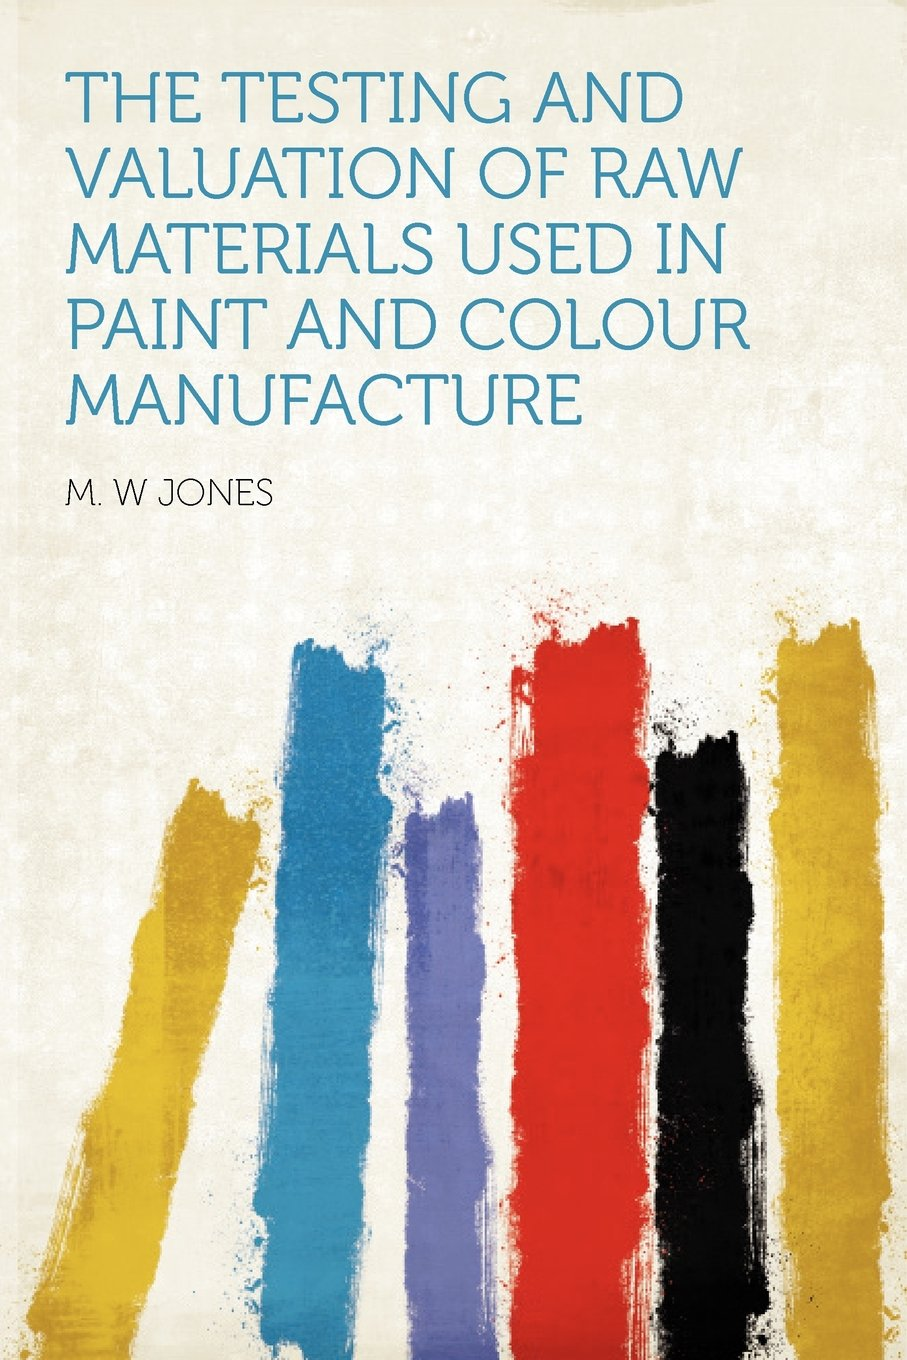 Download The Testing and Valuation of Raw Materials Used in Paint and Colour Manufacture pdf